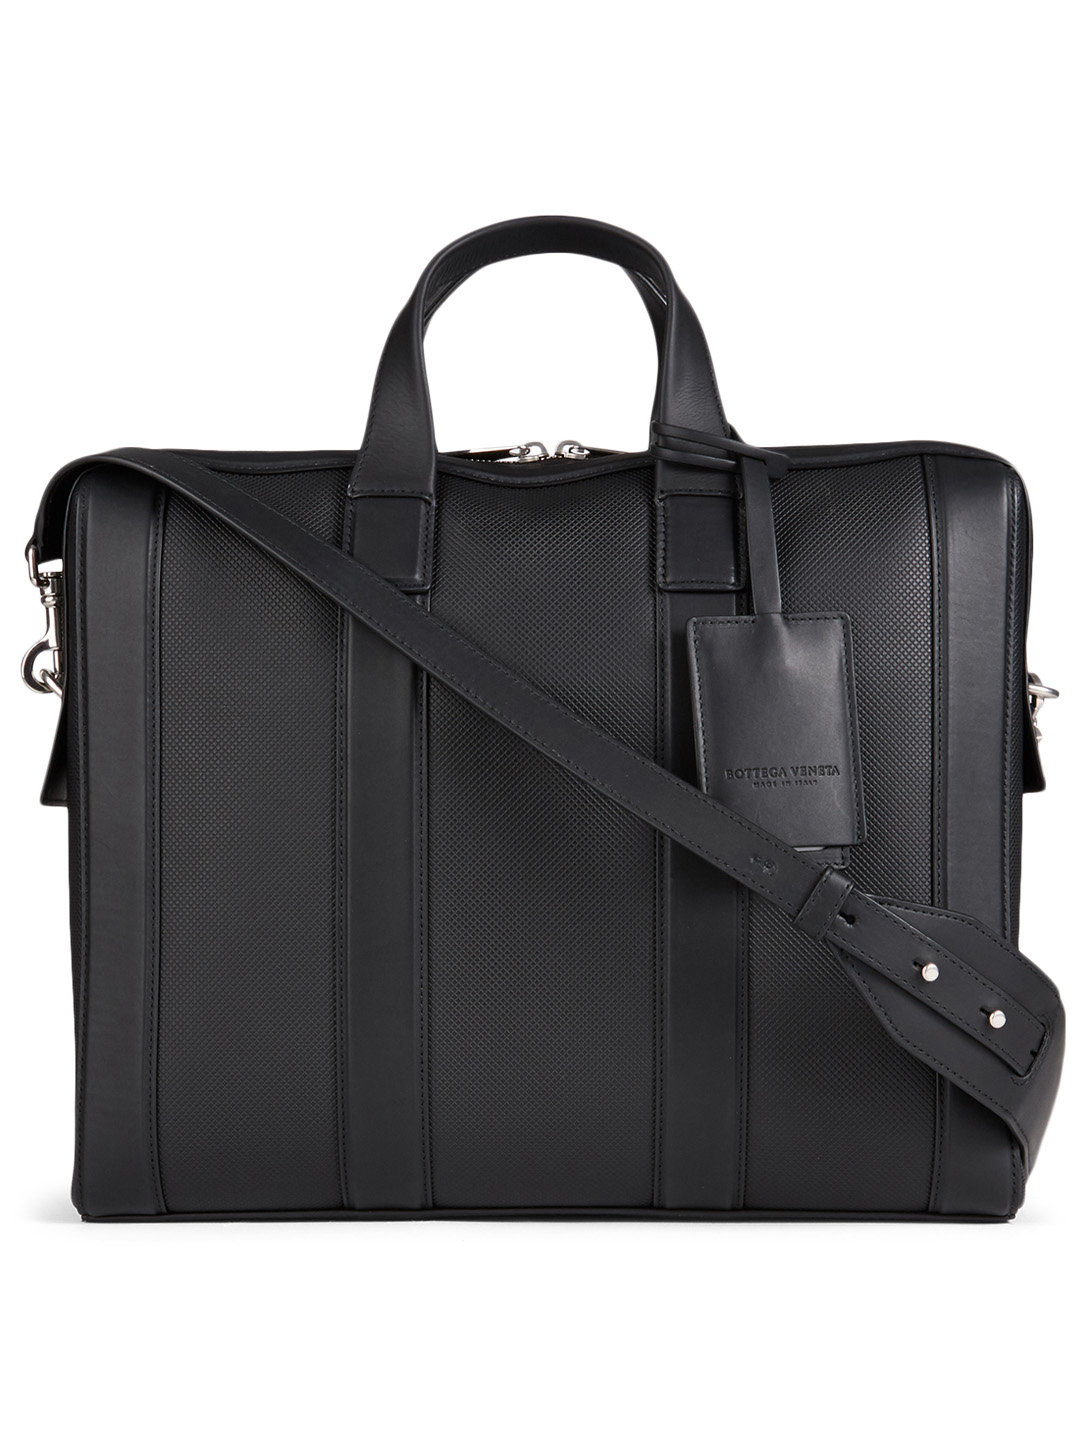 BOTTEGA VENETA Marcopolo Leather Briefcase Men's Black